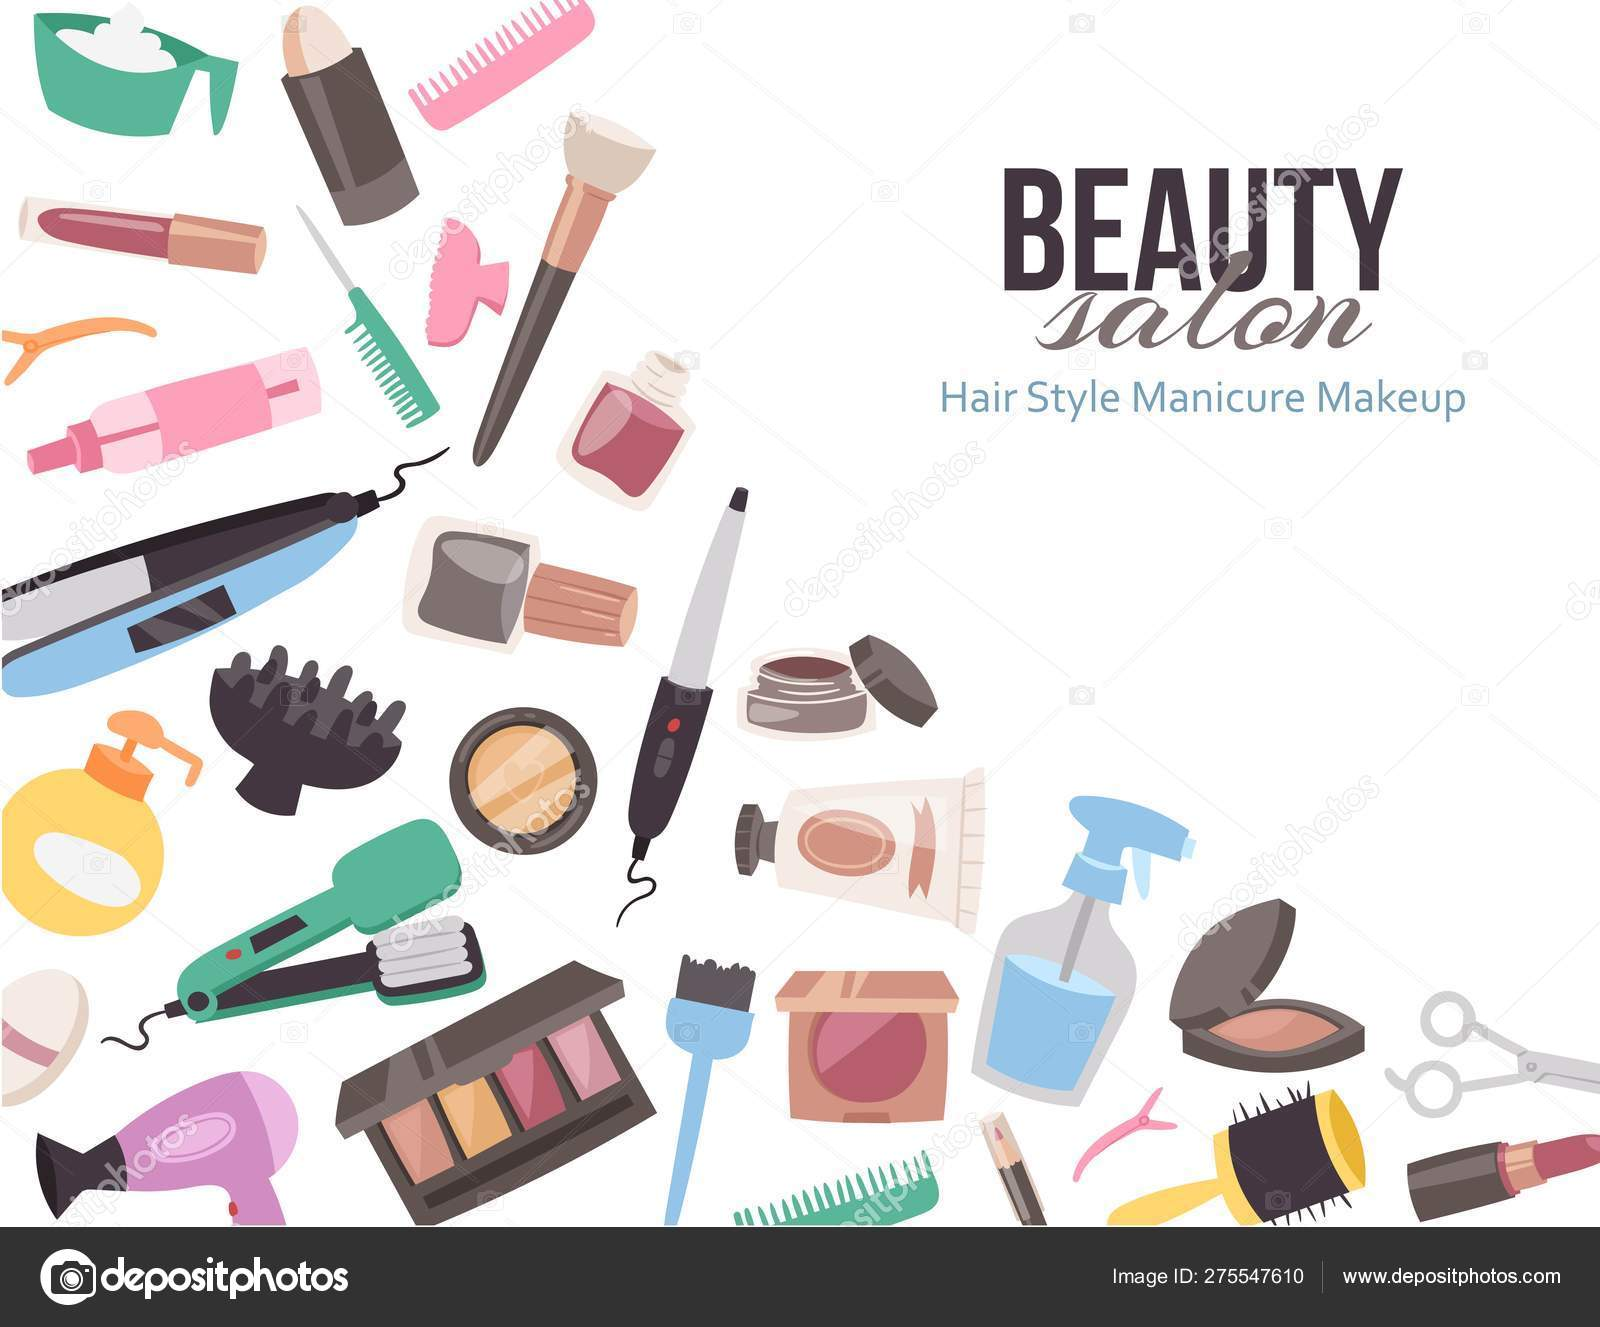 Vector Template With Cartoon Accessories For Beauty Salon Or Brochure For Spa Advertisement And Cover Design Beautiful Banner Hairstyle Manicure And Makeup Beauty Tools Stock Vector C Vectorshow 275547610